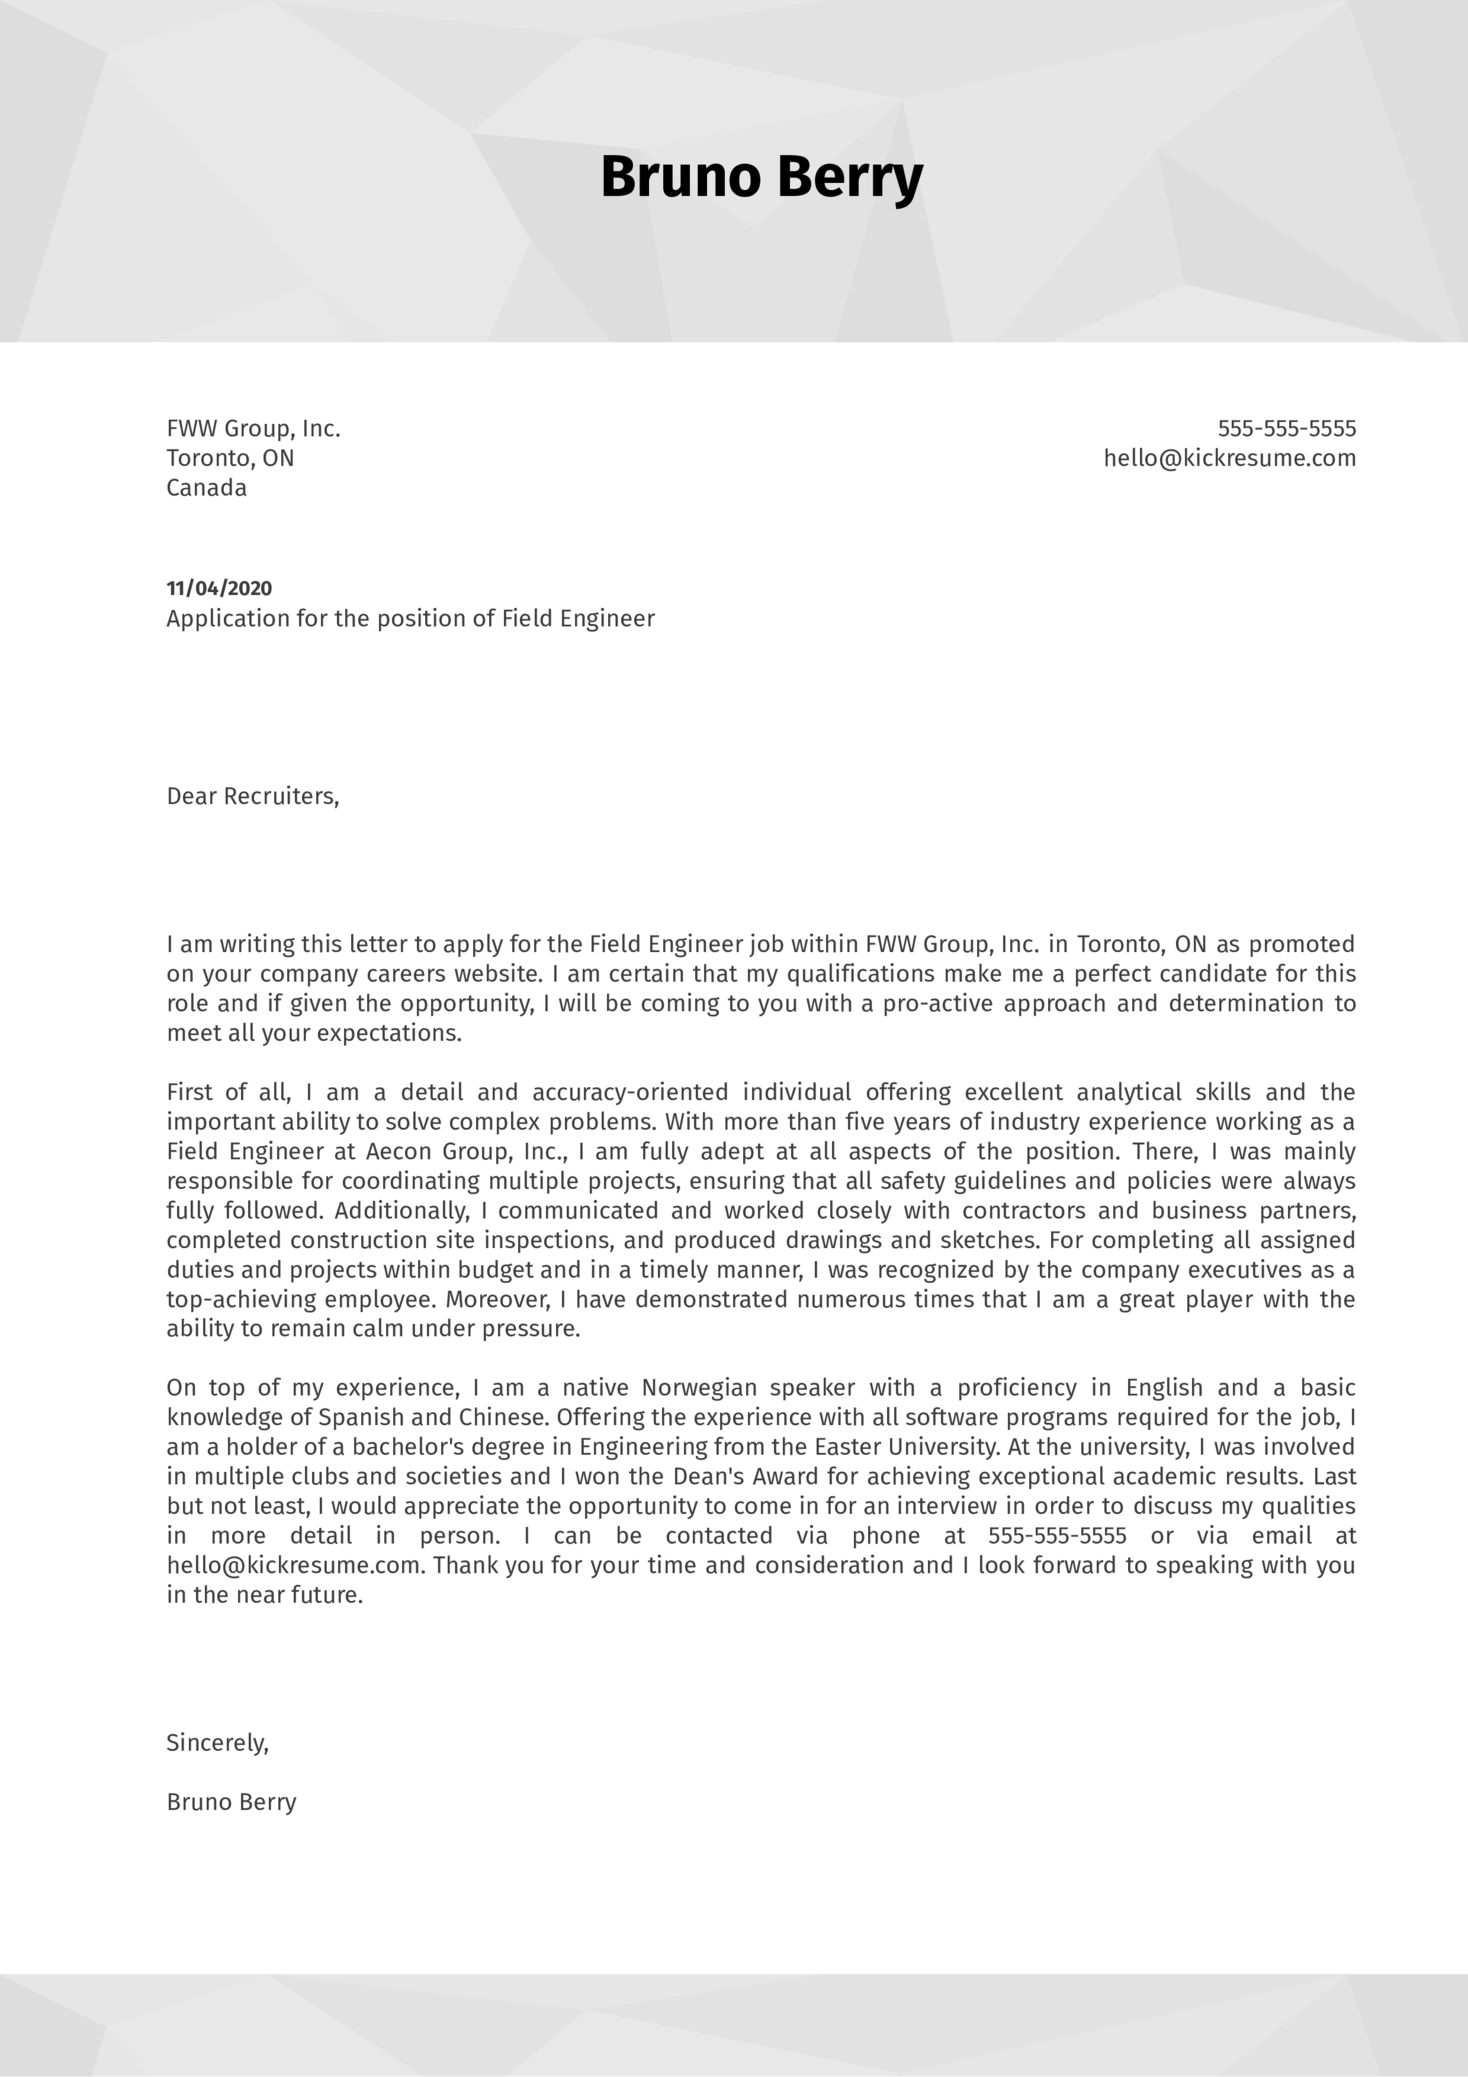 Field Engineer Cover Letter Example